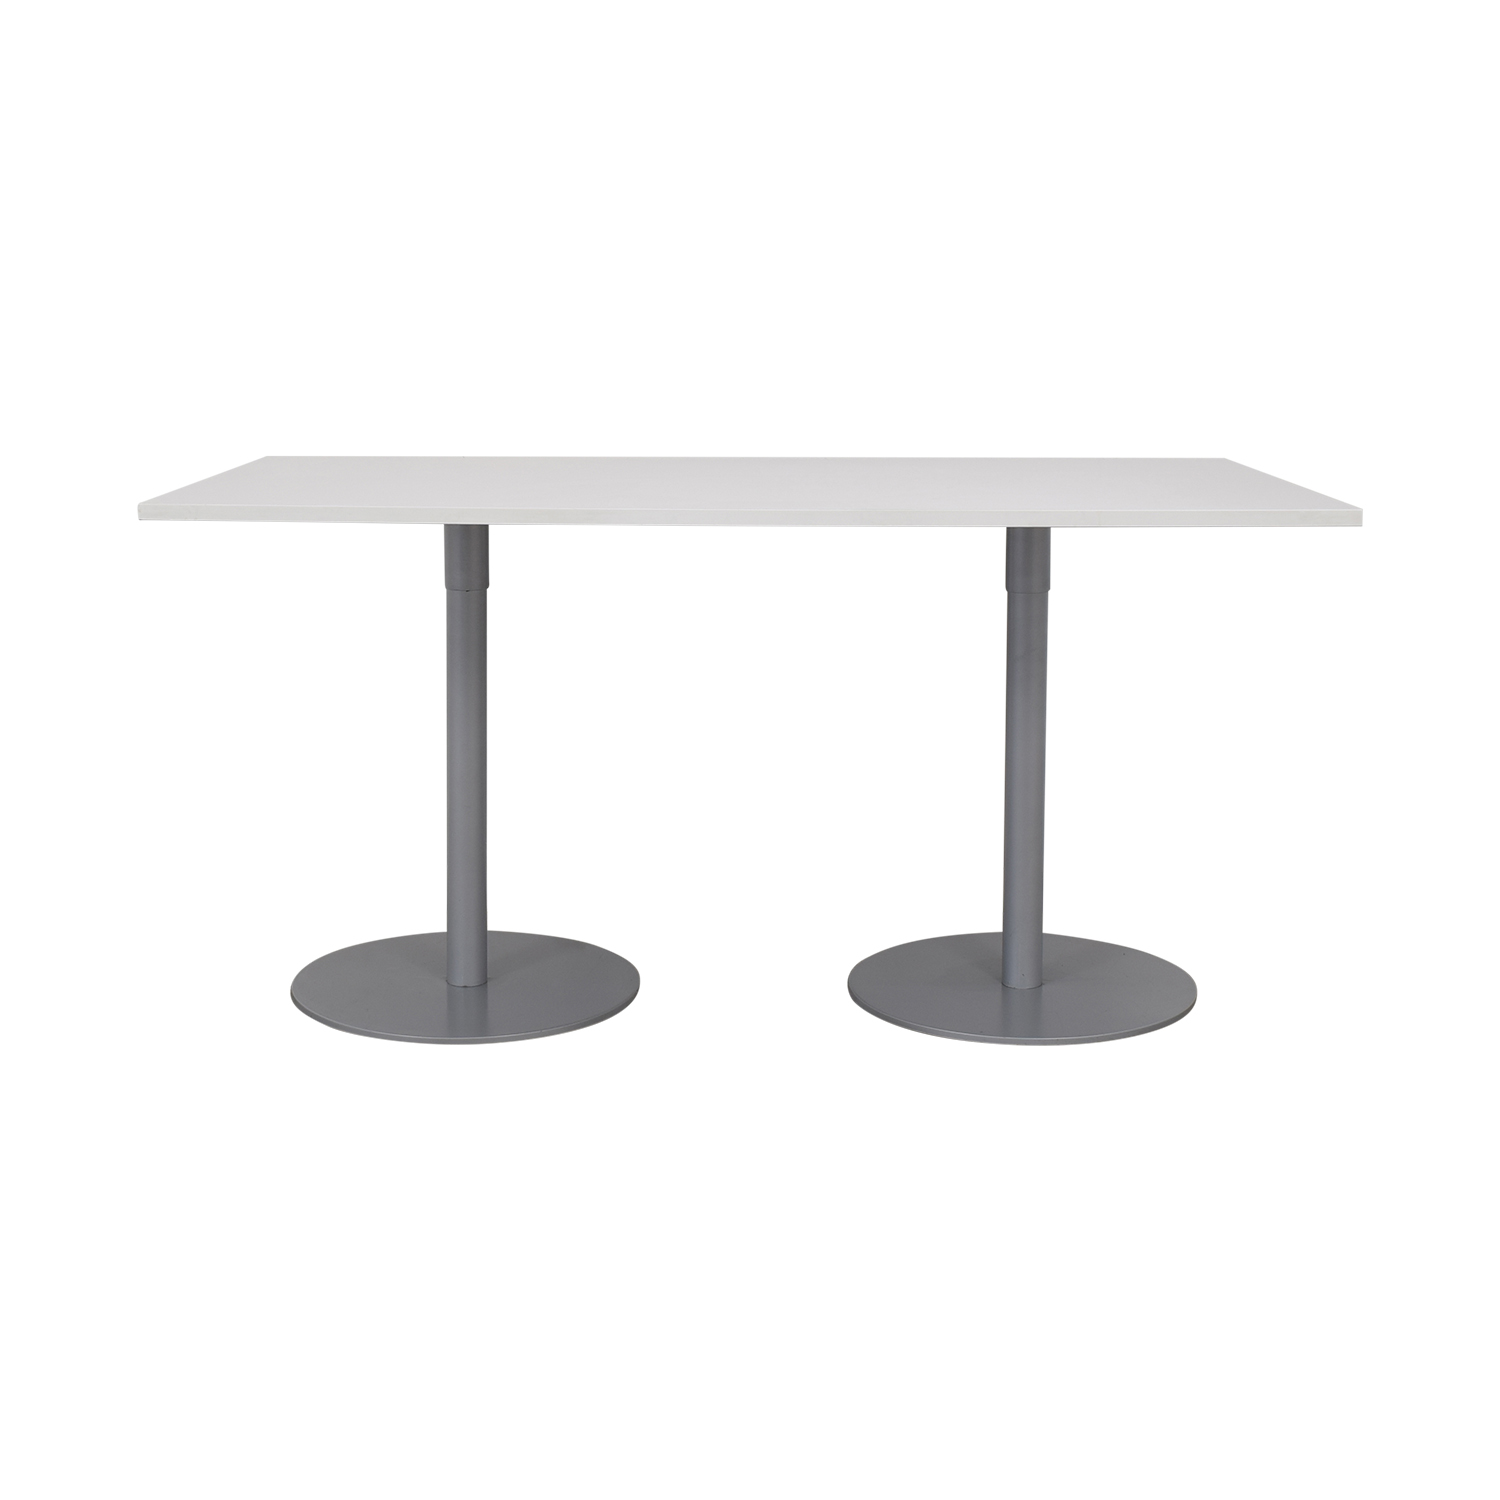 Officeworks Officeworks Meeting Table price